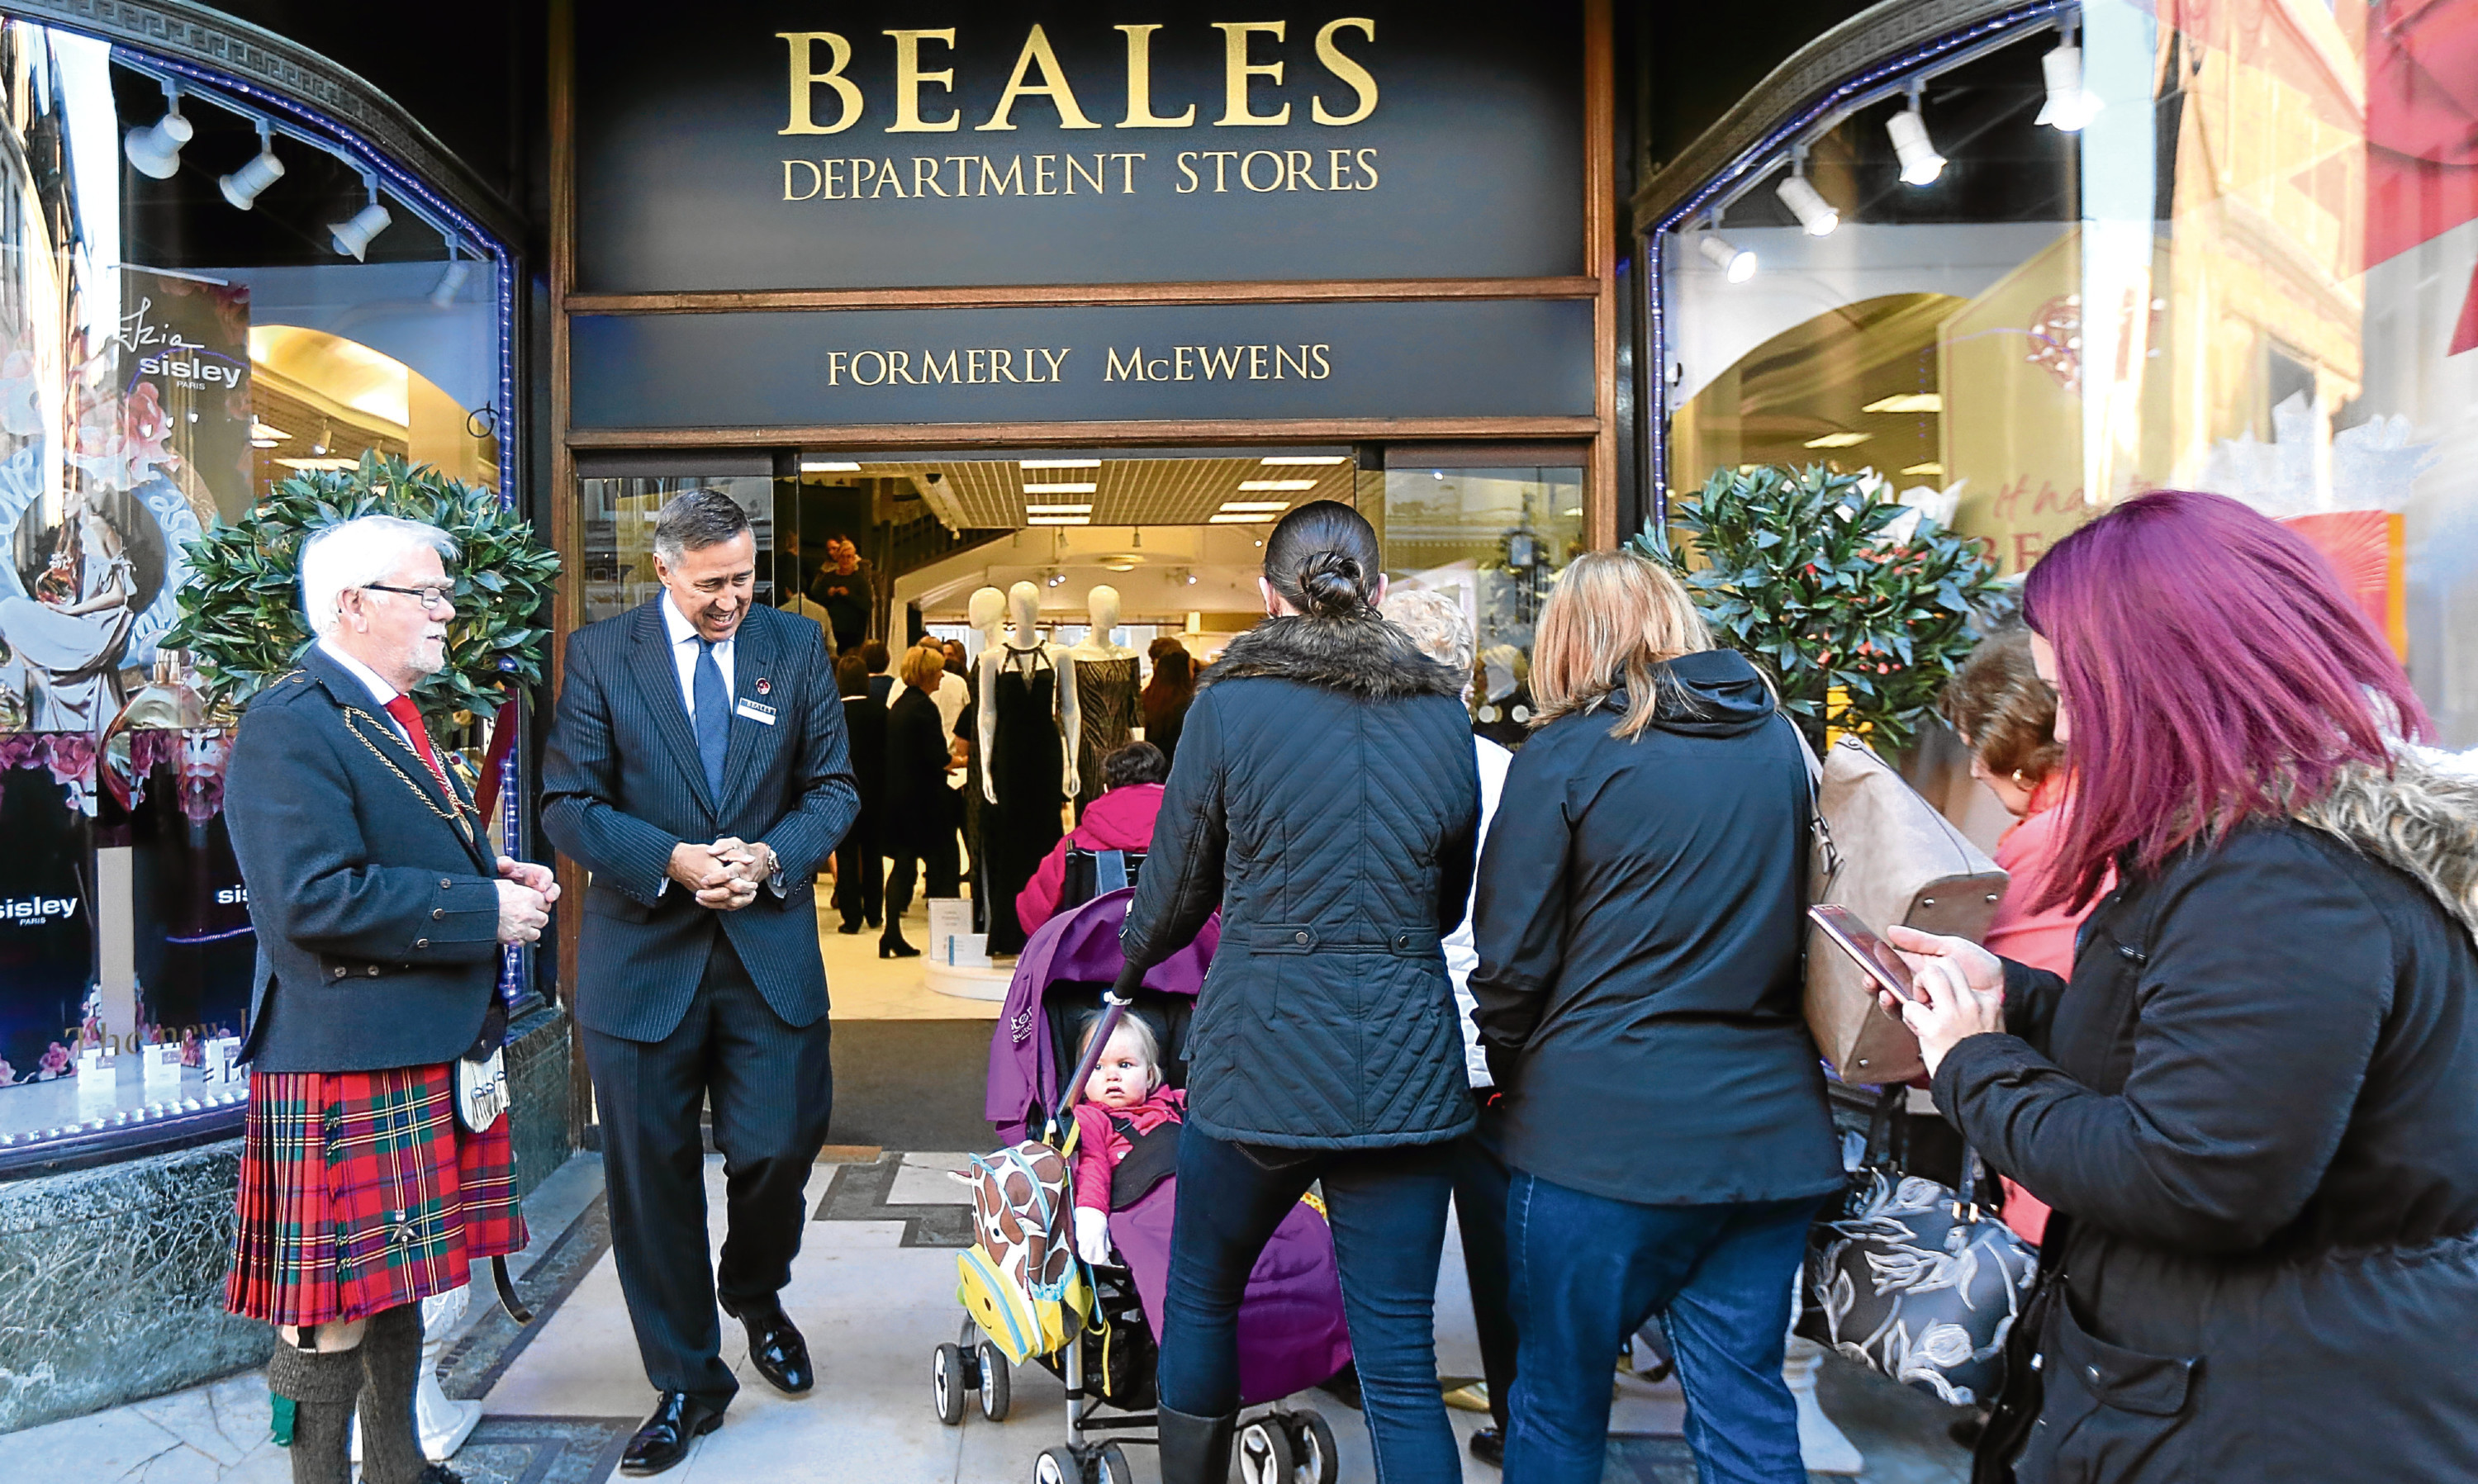 Beales has taken over the former McEwens store in Perth. It welcomed its first customers through the doors earlier this month.